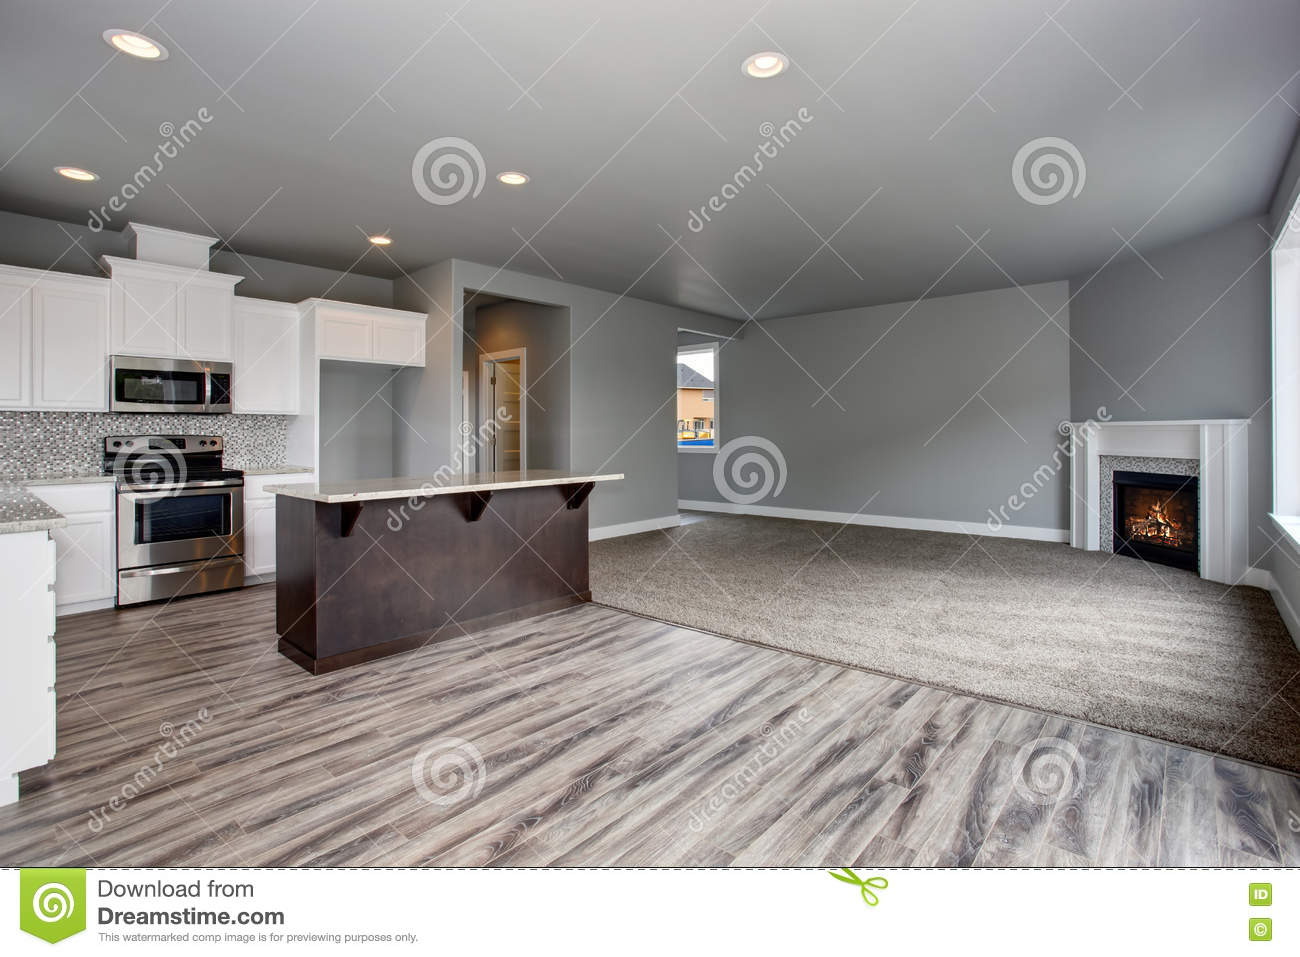 Grey house interior of kitchen room connected with the living room stock photo image 74849492 - Interior designs of houses and kitchens ...